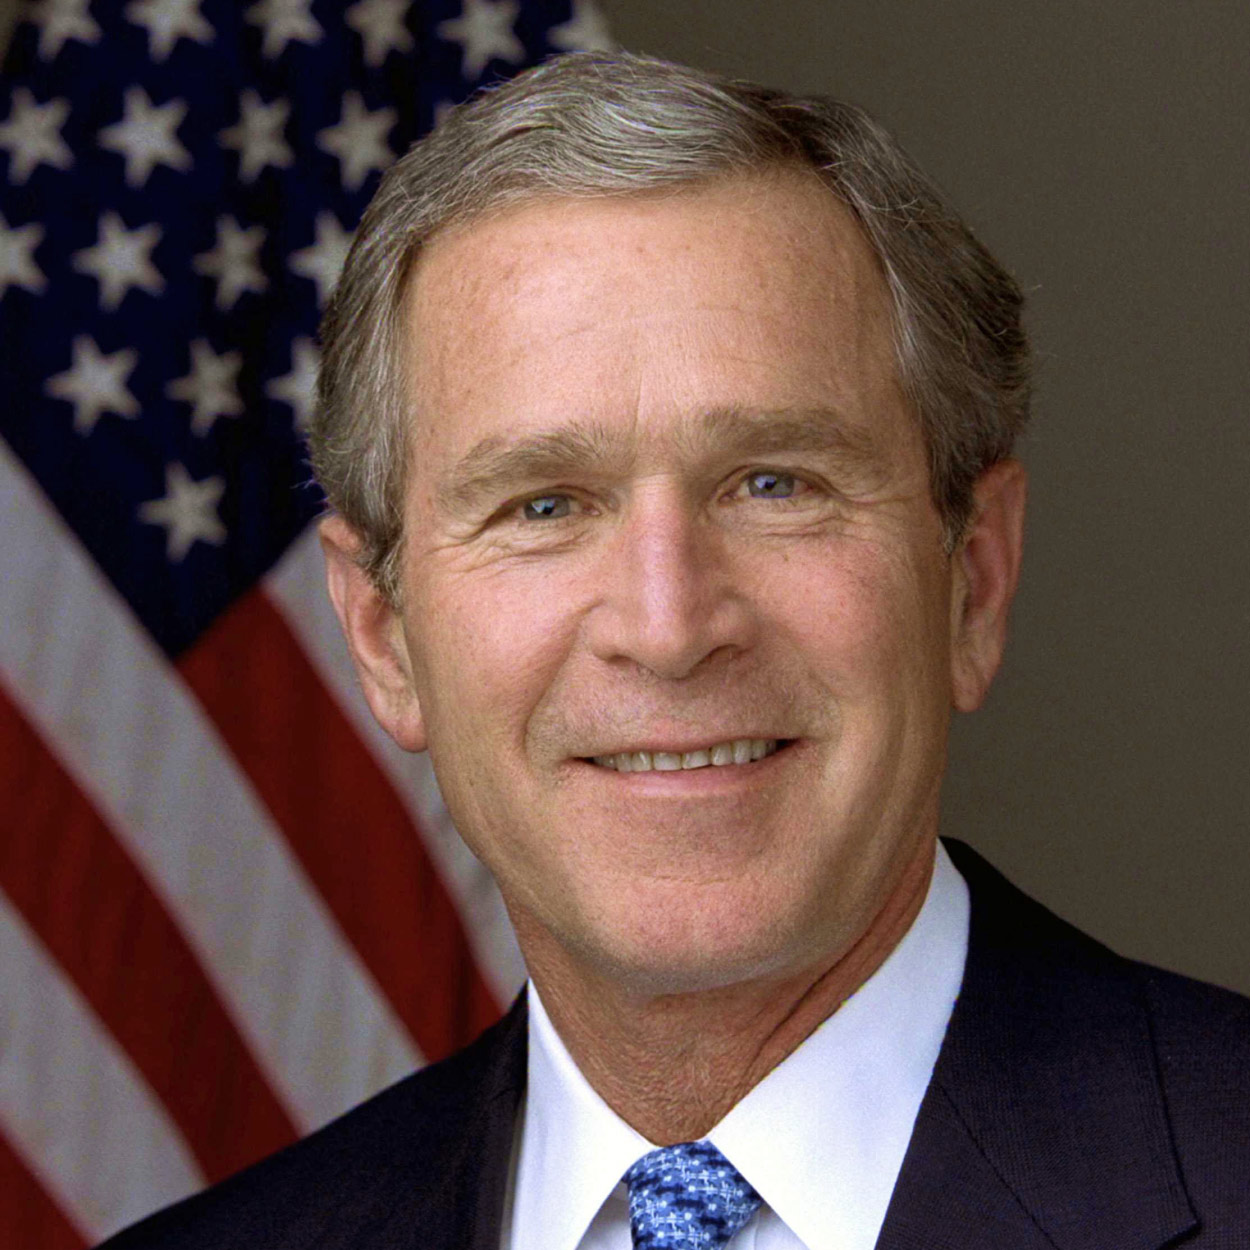 Portrait of George W. Bush, the 43rd President of the United States